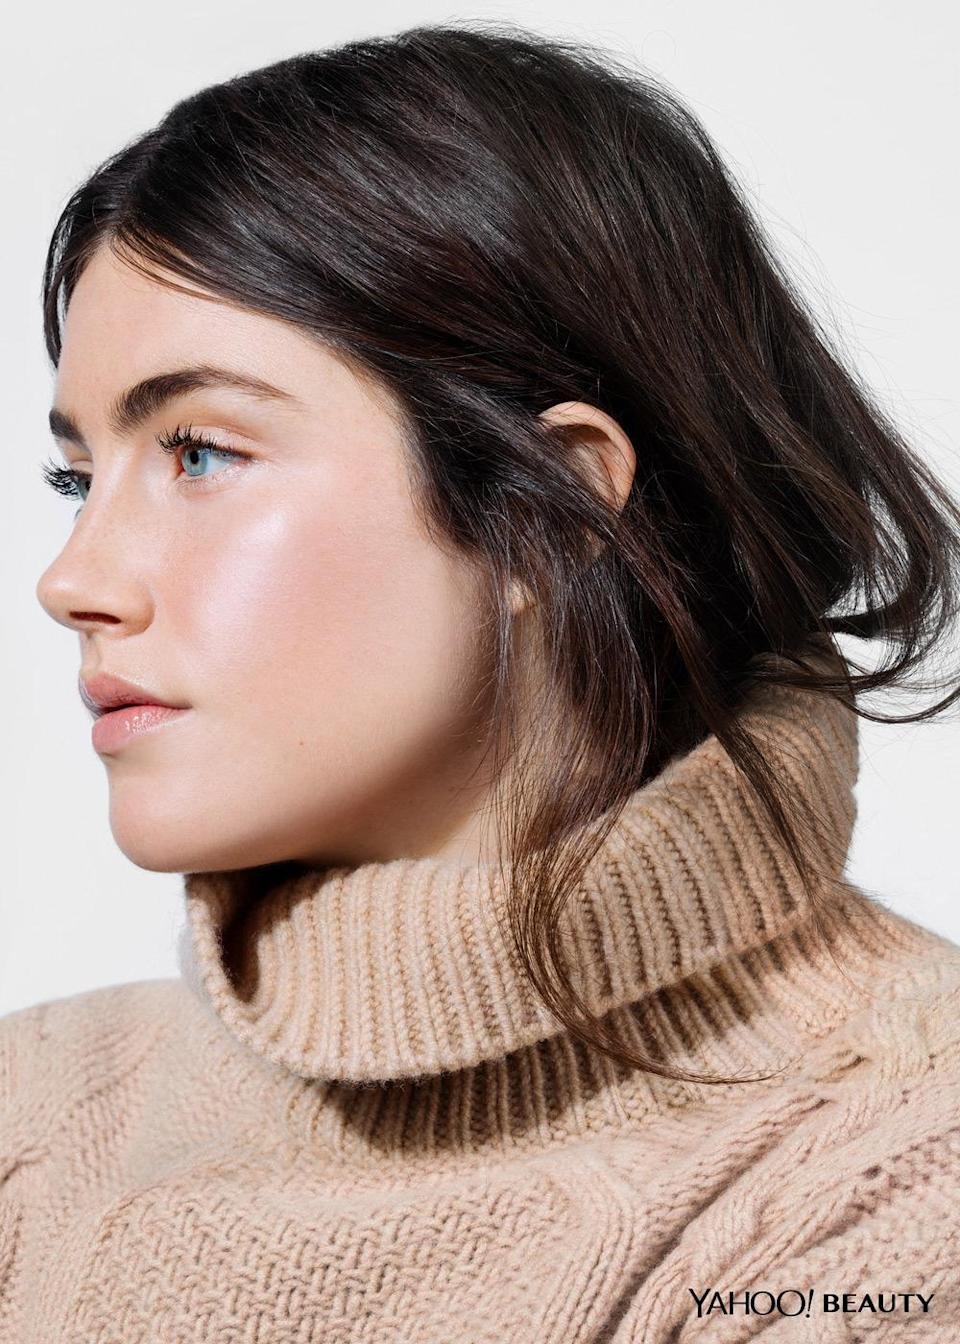 """<p>From powders to creams, here are our favorite products for getting a glow despite the grey skies. <i>(Photo: <a href=""""http://www.benritter.com/"""" rel=""""nofollow noopener"""" target=""""_blank"""" data-ylk=""""slk:Ben Ritter"""" class=""""link rapid-noclick-resp"""">Ben Ritter</a> / Makeup: Bobbi Brown / Hair: <a href=""""http://www.sarahlaird.com/artist/herve/"""" rel=""""nofollow noopener"""" target=""""_blank"""" data-ylk=""""slk:Hervé"""" class=""""link rapid-noclick-resp"""">Hervé</a> / Model: <a href=""""https://www.instagram.com/annaspeckhart/?hl=en"""" rel=""""nofollow noopener"""" target=""""_blank"""" data-ylk=""""slk:Anna Speckhart"""" class=""""link rapid-noclick-resp"""">Anna Speckhart</a> / Sweater: <a href=""""http://www.stevenalan.com/ELIZA-TURTLENECK/H15_H1_WSW0147.html?dwvar_H15__H1__WSW0147_color=A239#start=80"""" rel=""""nofollow noopener"""" target=""""_blank"""" data-ylk=""""slk:Steven Alan"""" class=""""link rapid-noclick-resp"""">Steven Alan</a>, $375)</i><br></p>"""